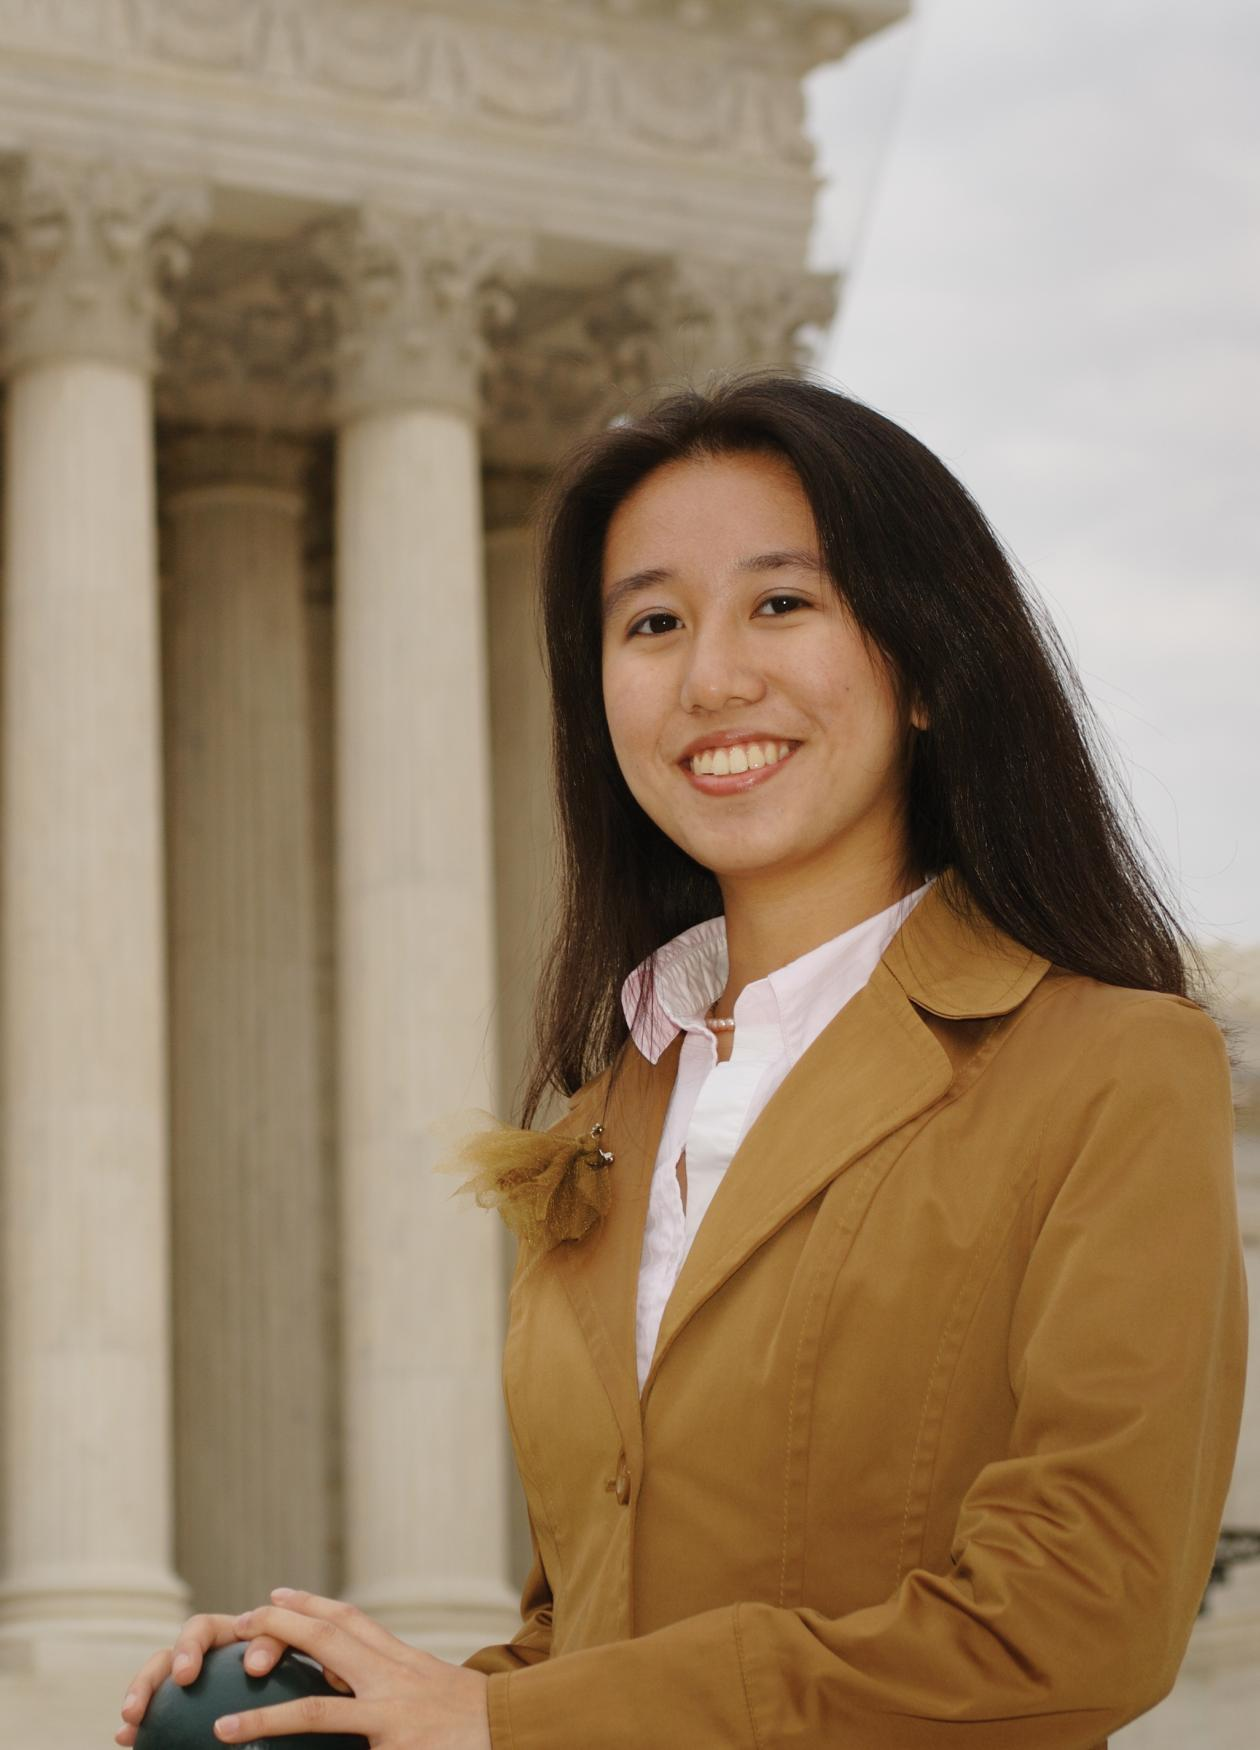 My Hobby English Essay Image Of Young Woman In Front Of Supreme Court Building Narrative Essay Topics For High School Students also Sample Essay High School Building The Bill Of Rights  National Endowment For The Humanities  Teaching Essay Writing High School